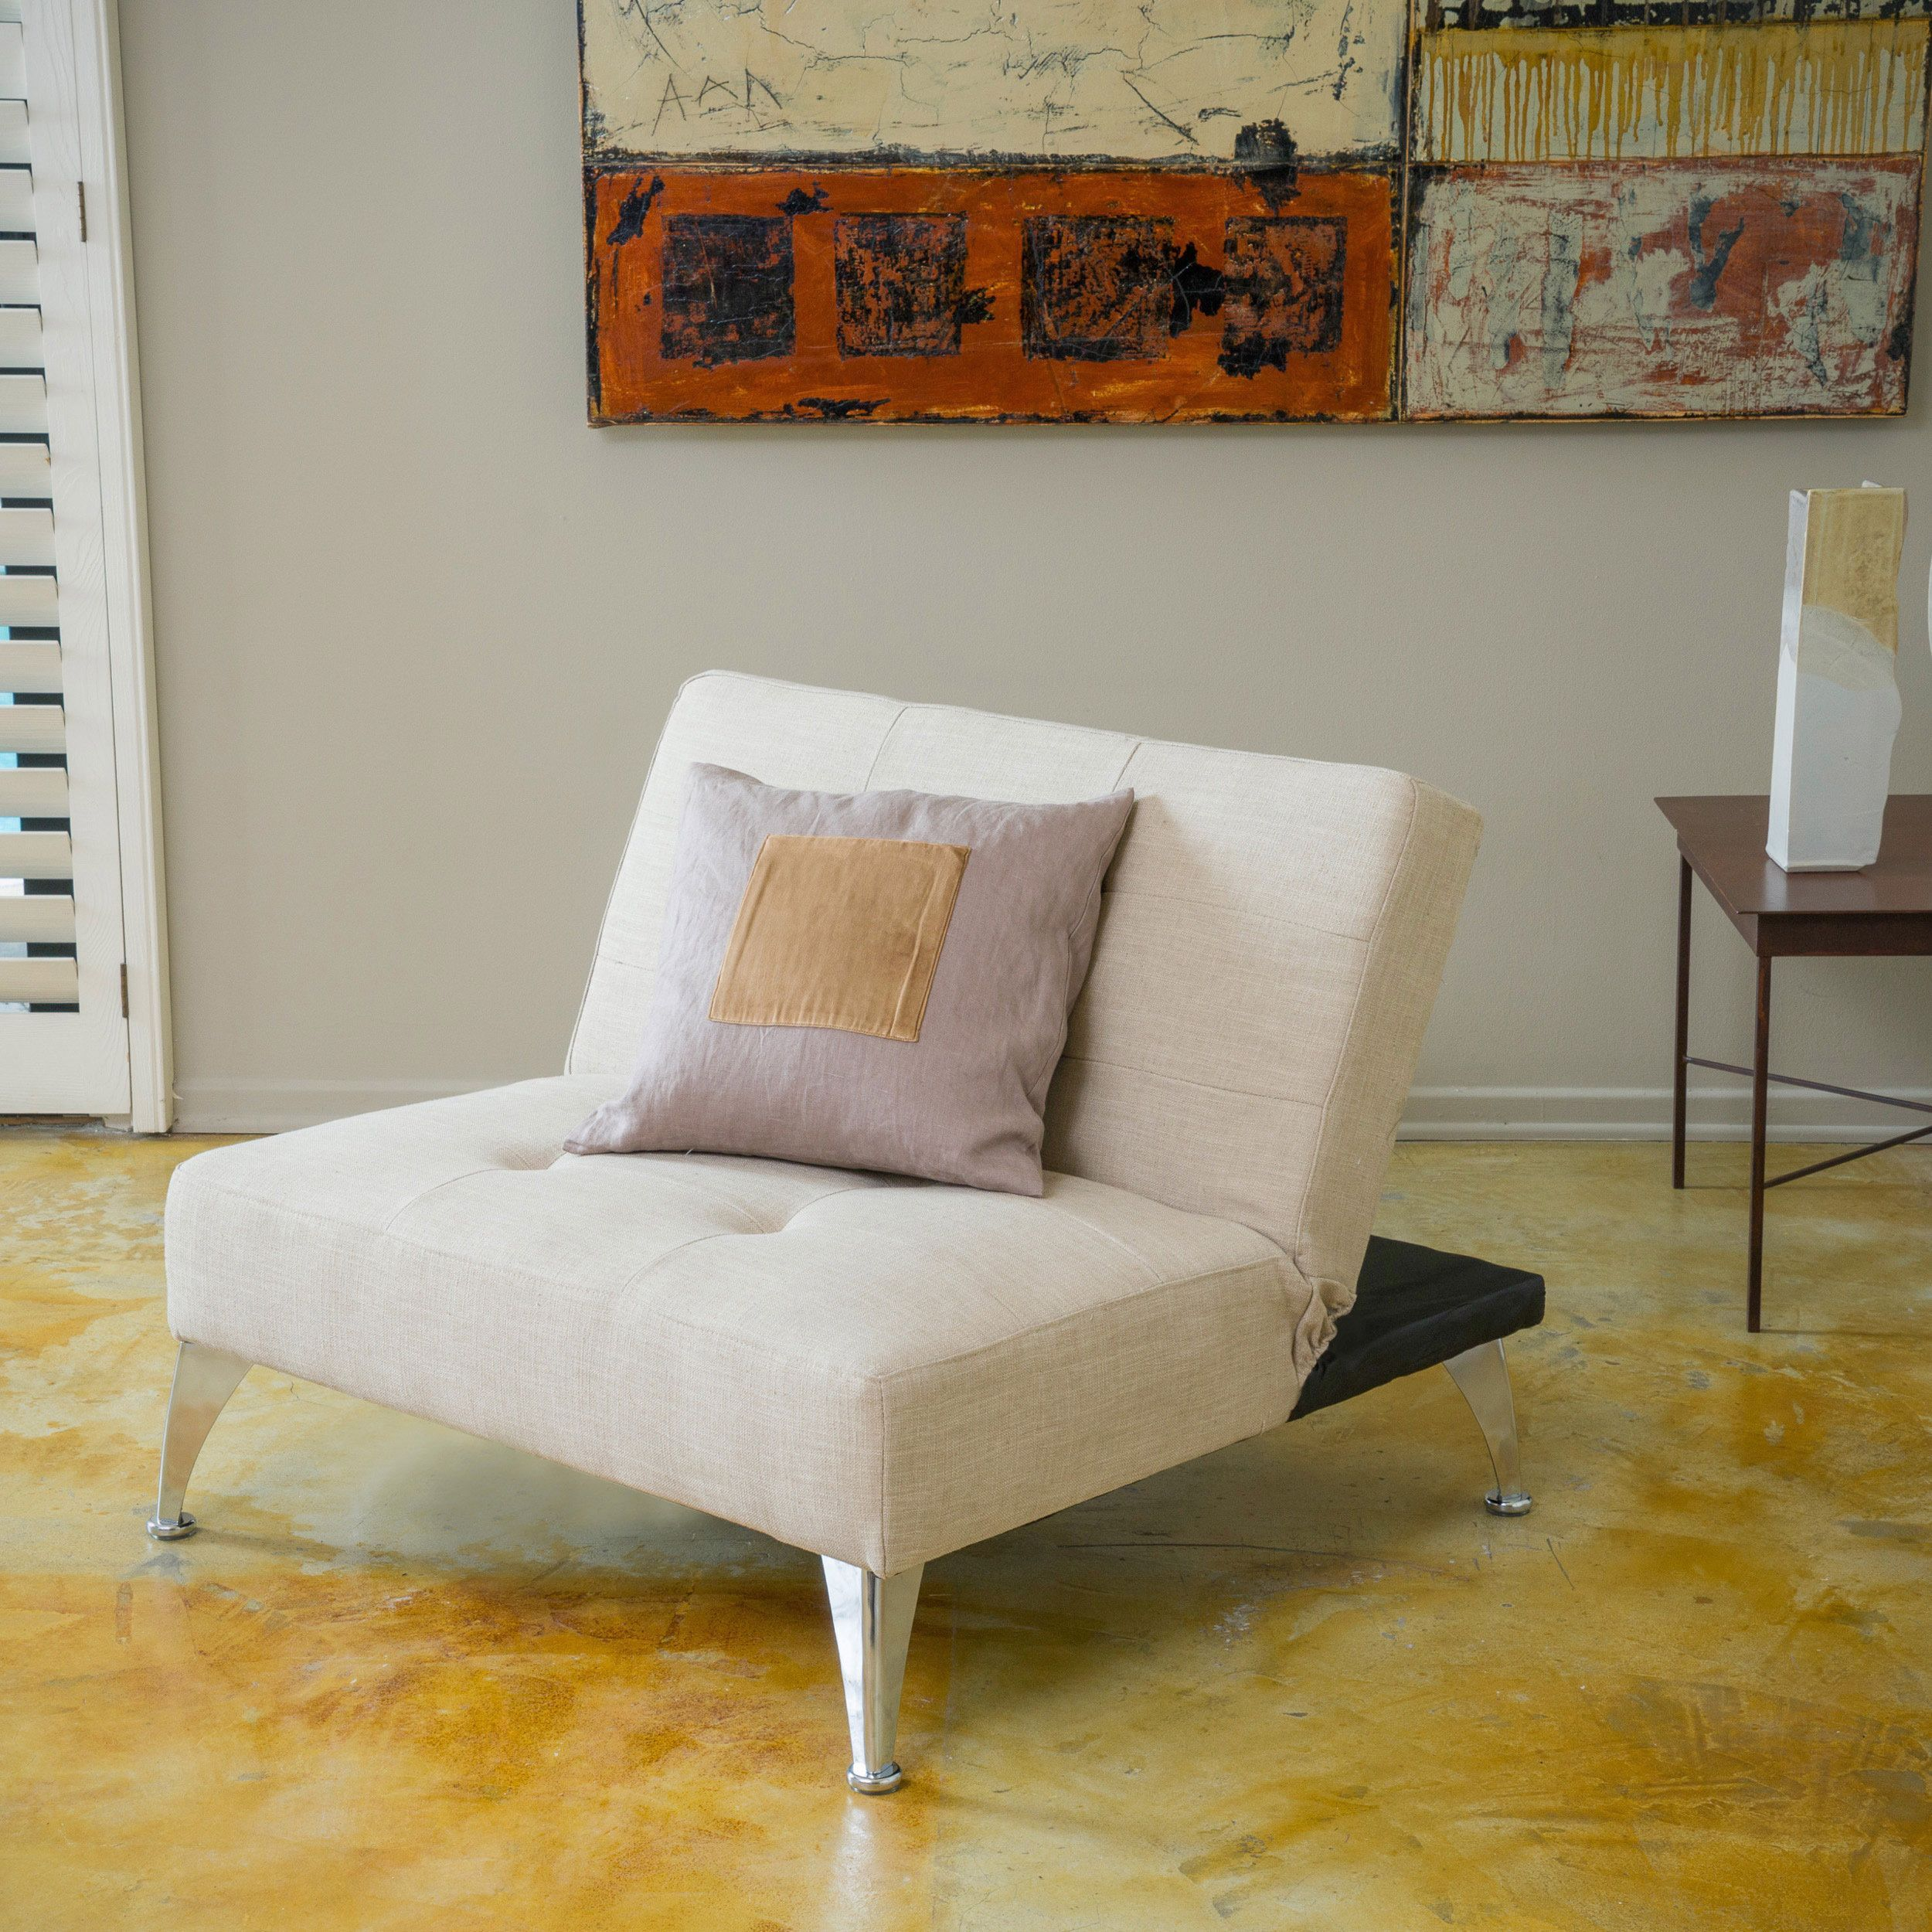 Alston clickclack oversized convertible ottoman chair by